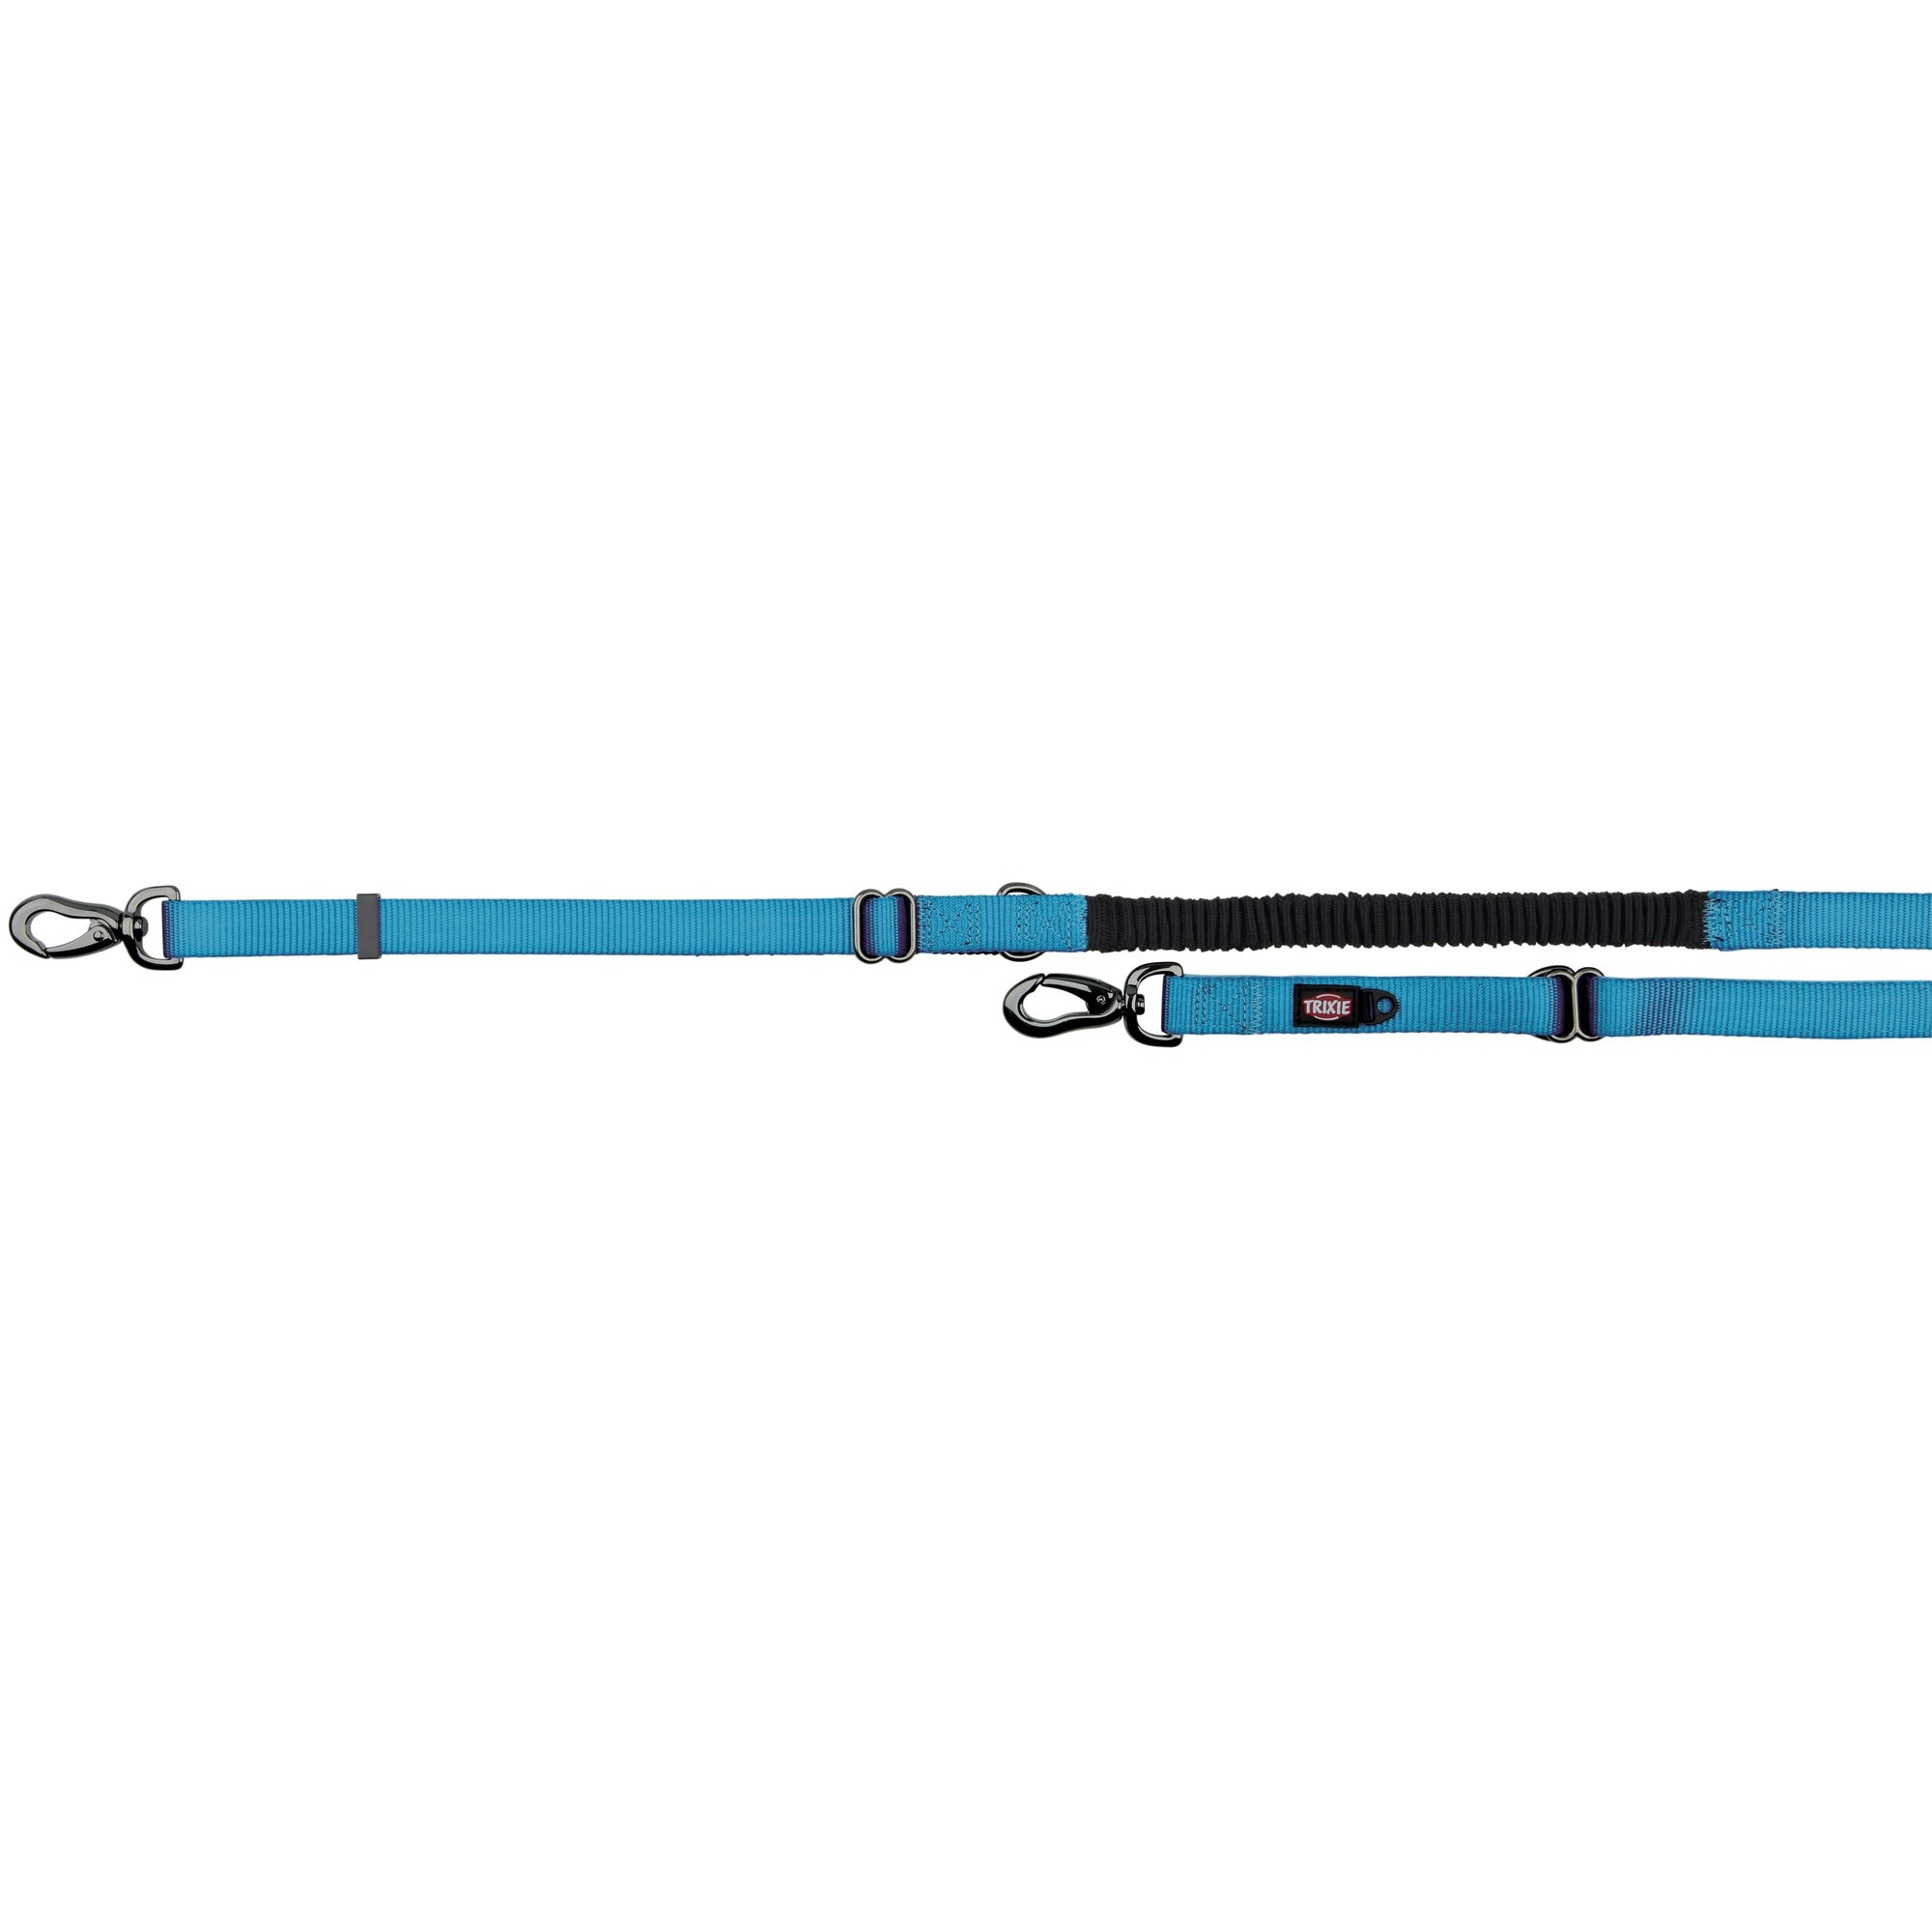 Trixie-Adjustable-Dog-Leash-With-Shock-Absorber-TX730 thumbnail 4